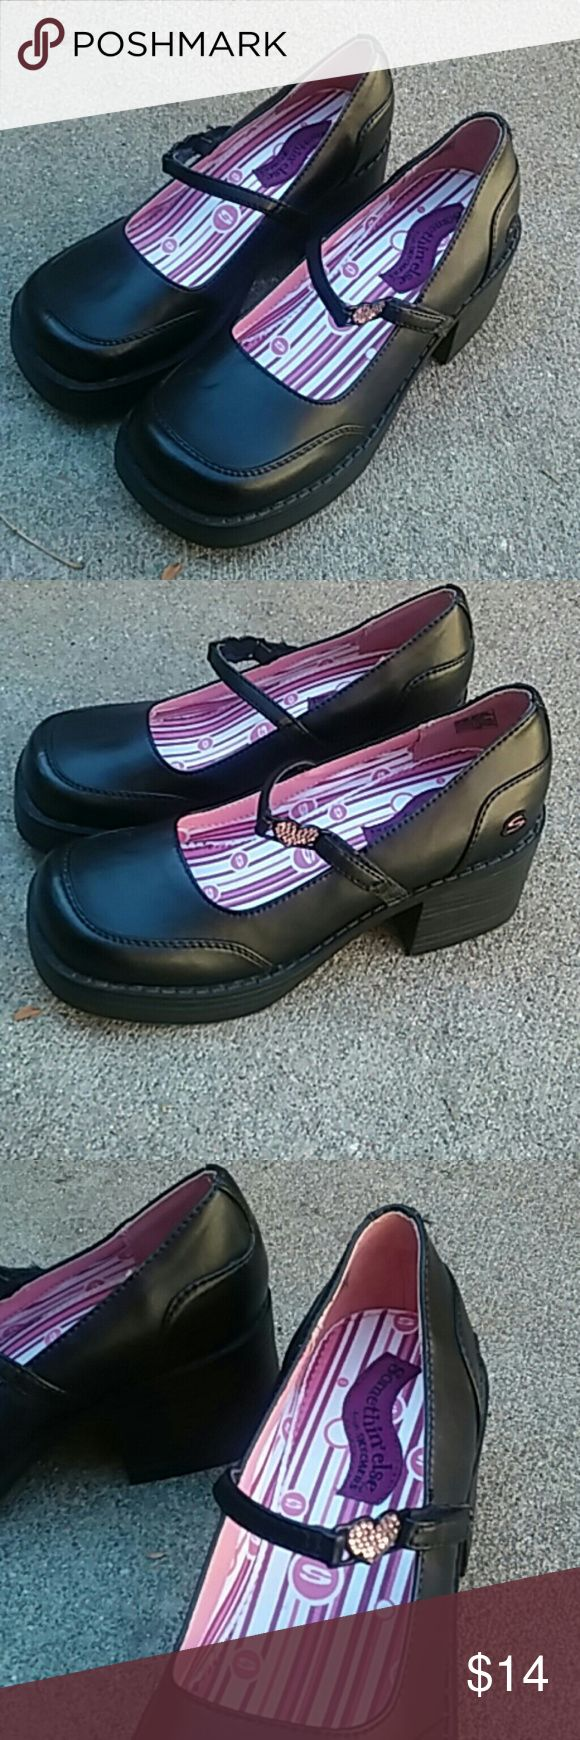 Skechers girls 3.5 mary janes chunky heels bling Worn once darling shoes! Skechers Shoes Dress Shoes